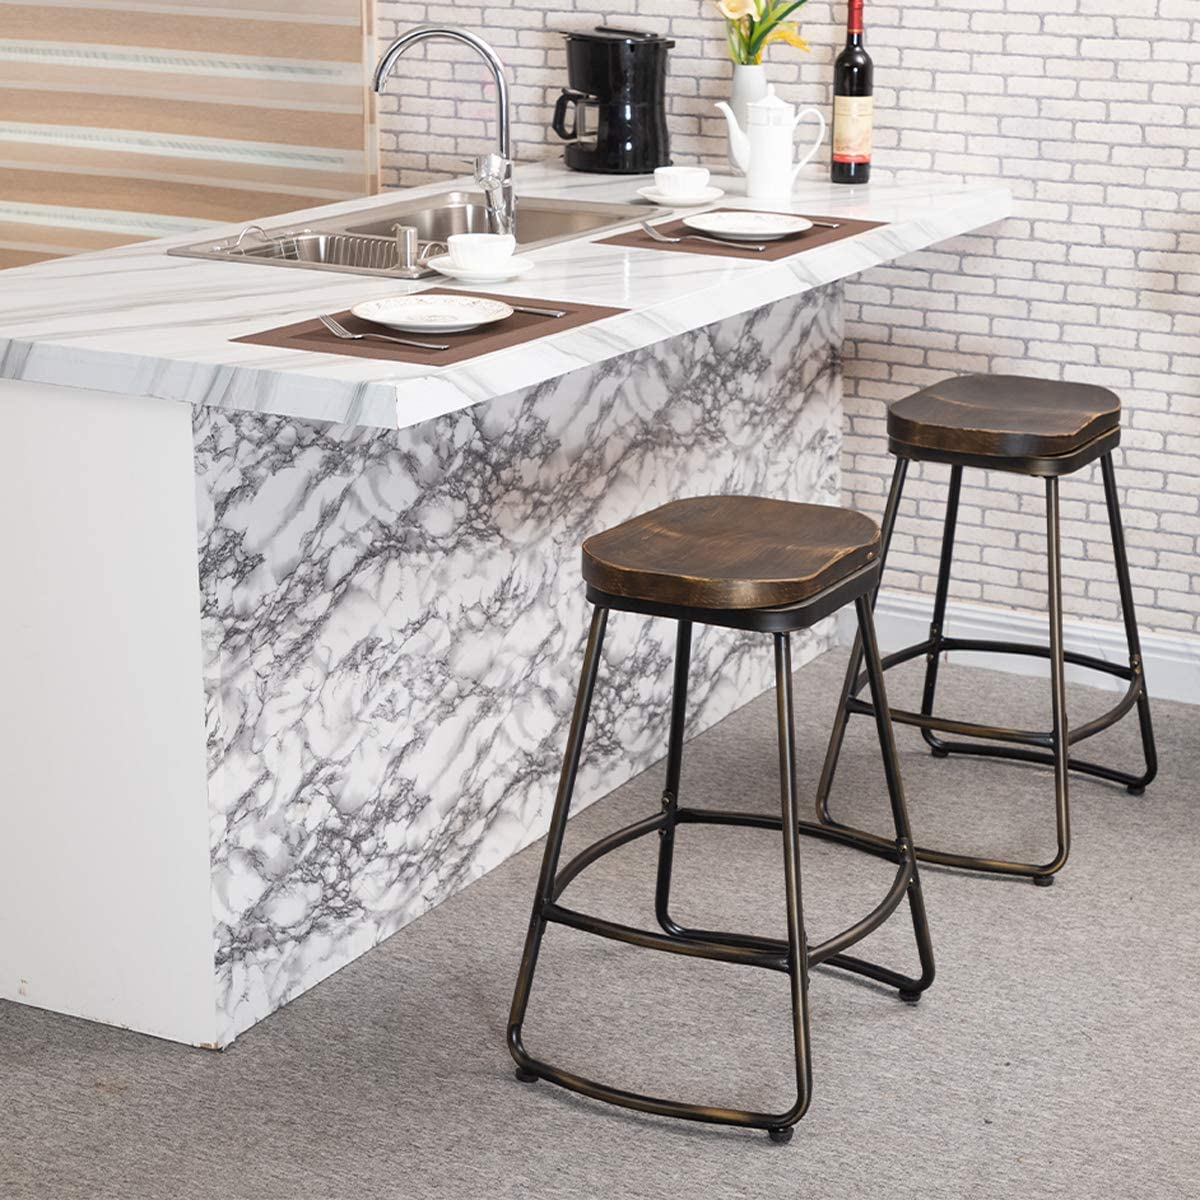 Awonde Swivel Bar Stools Set of 2 Industrial Distressed Metal Bar stools 30 inches